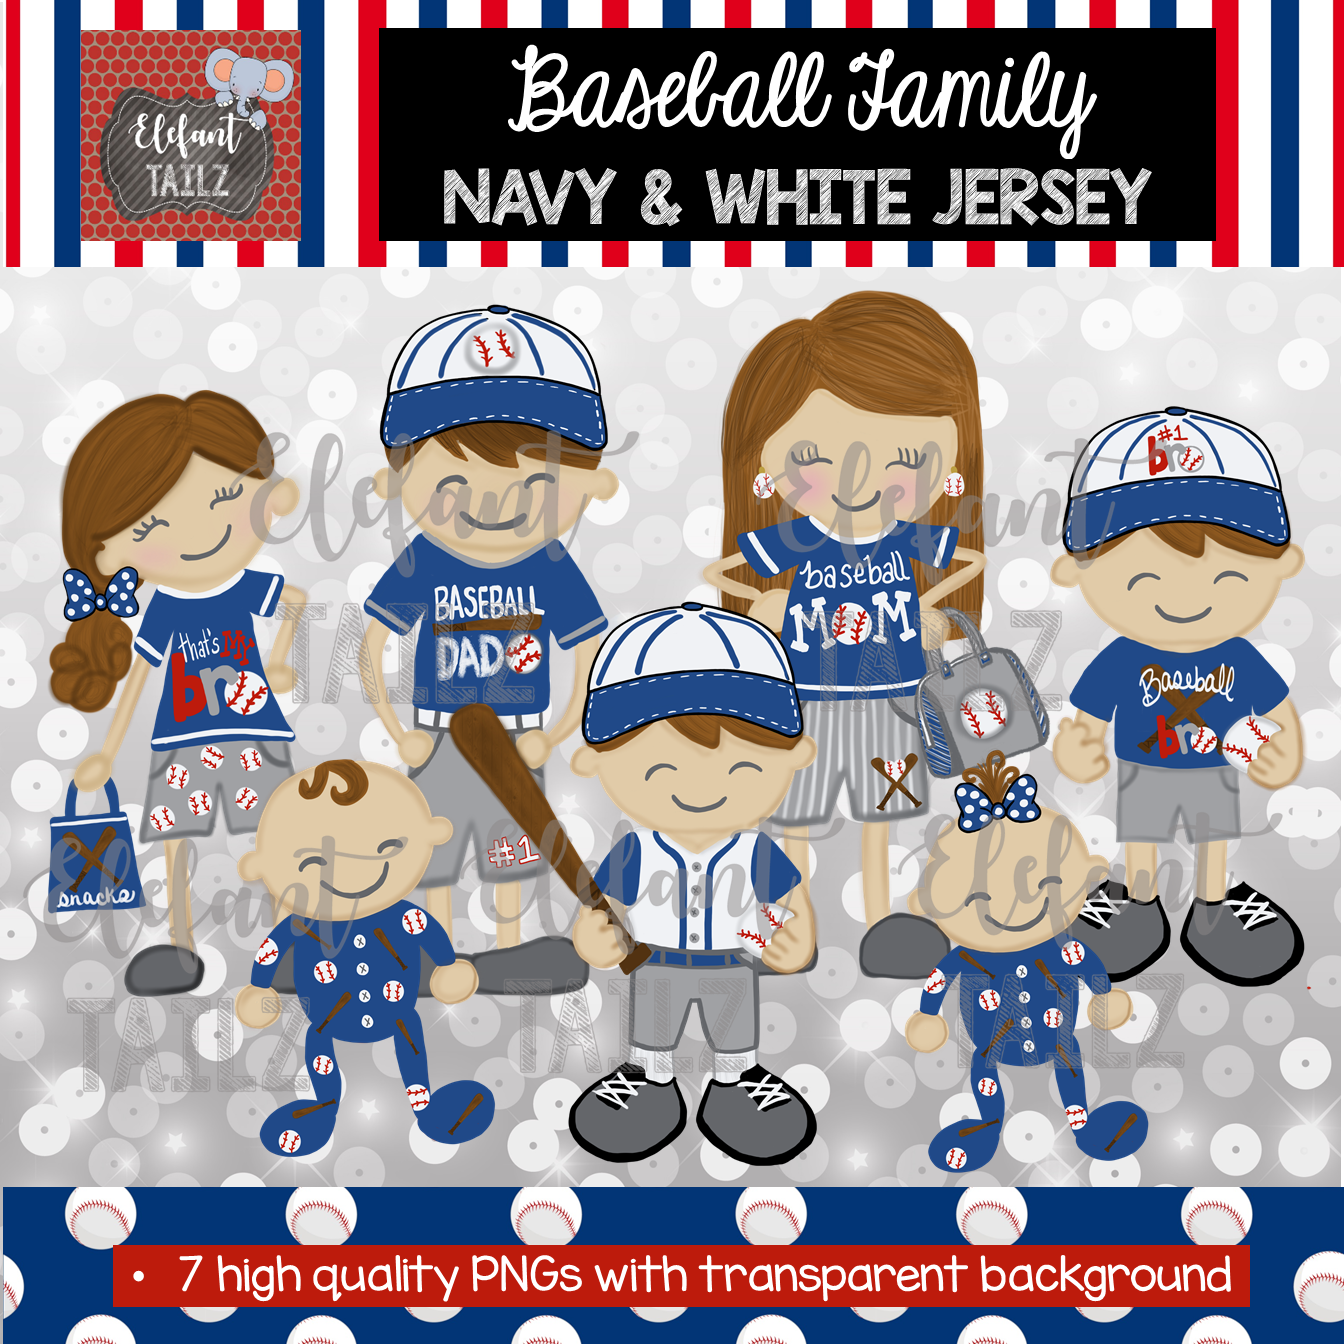 Baseball Family - Brown Hair - Navy & White Jersey